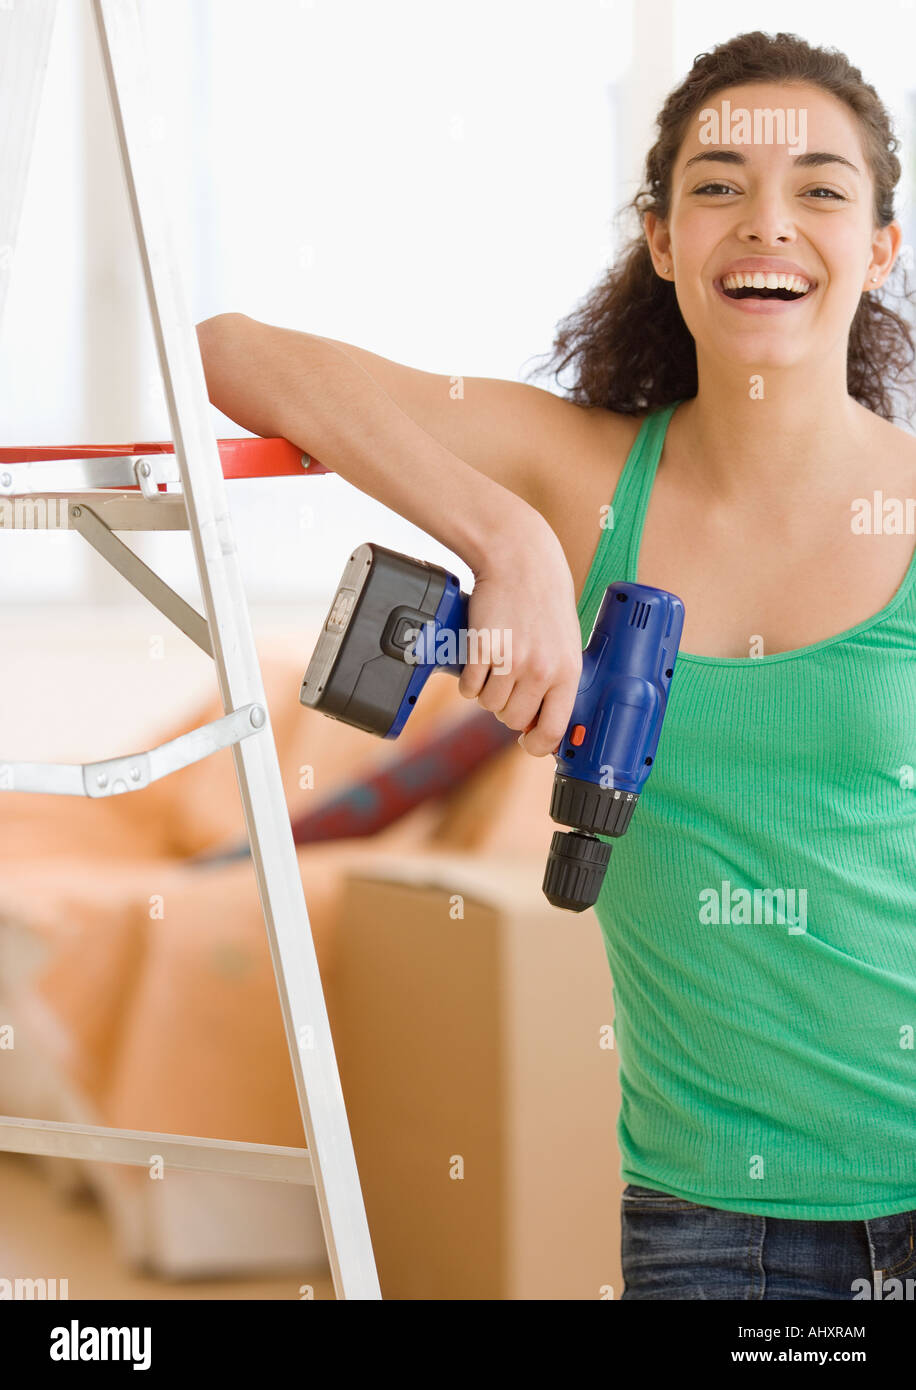 Woman holding cordless drill - Stock Image